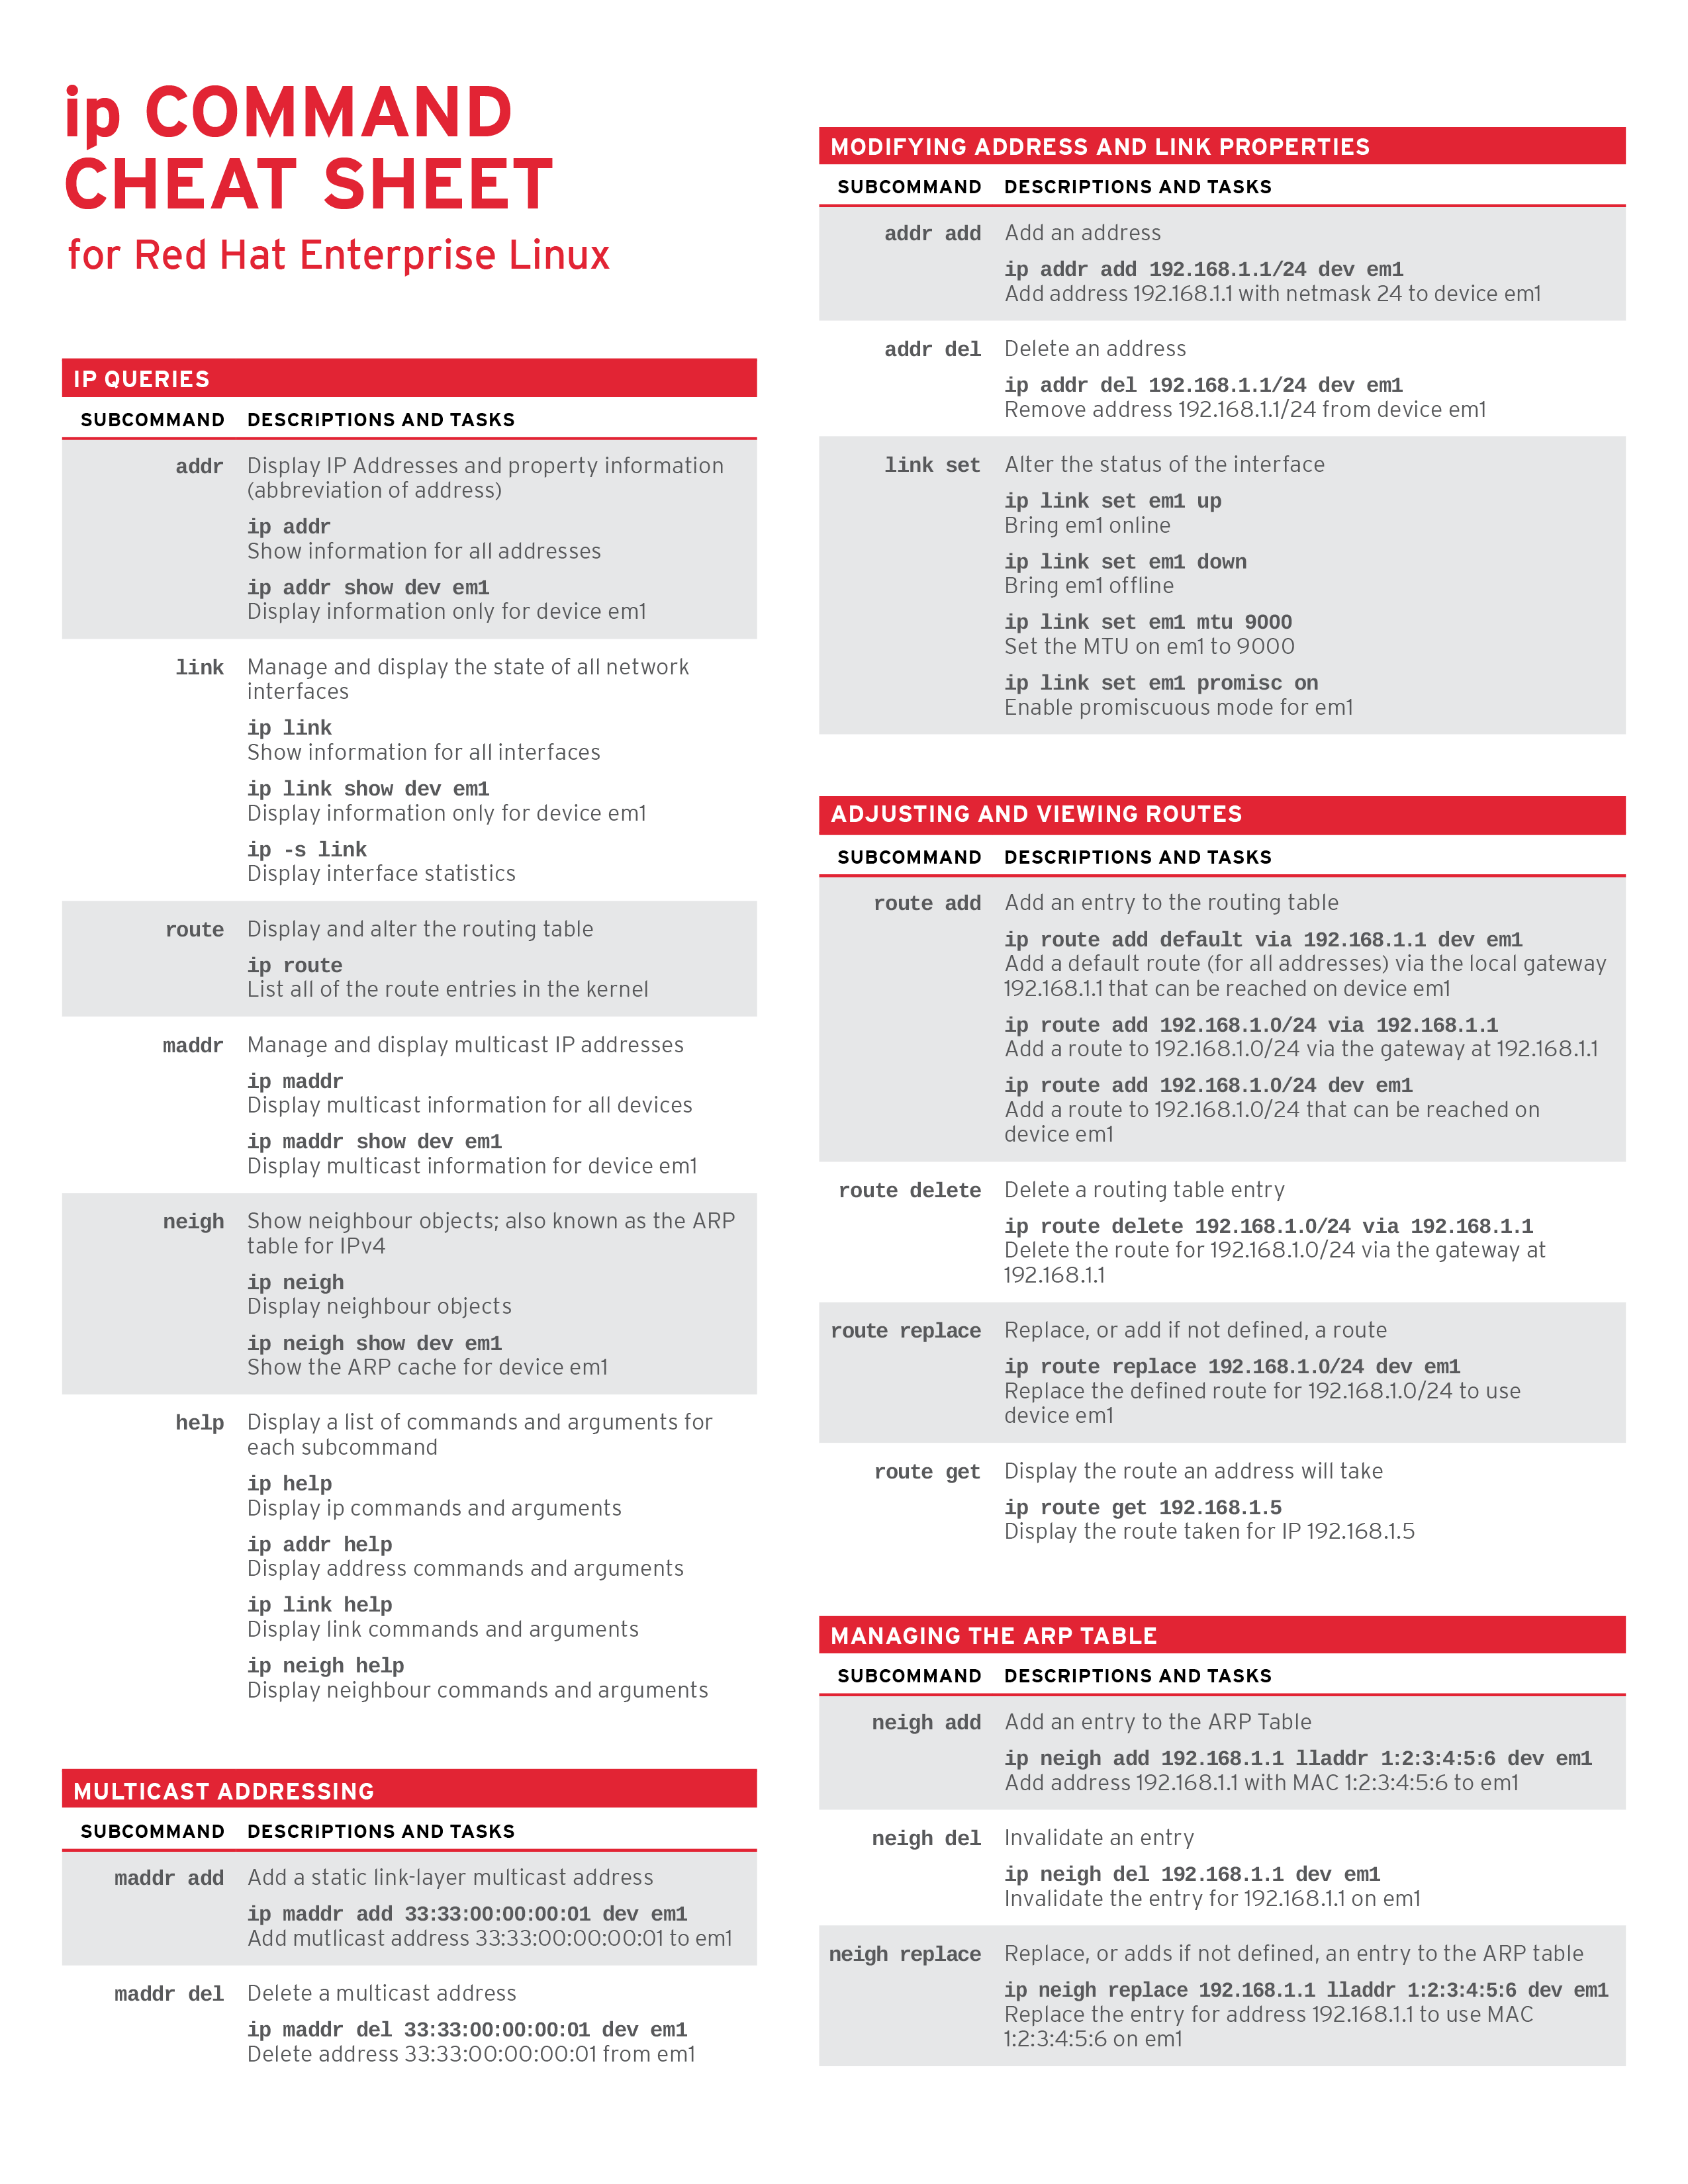 ip Command Cheat Sheet for Red Hat Enterprise Linux - Red